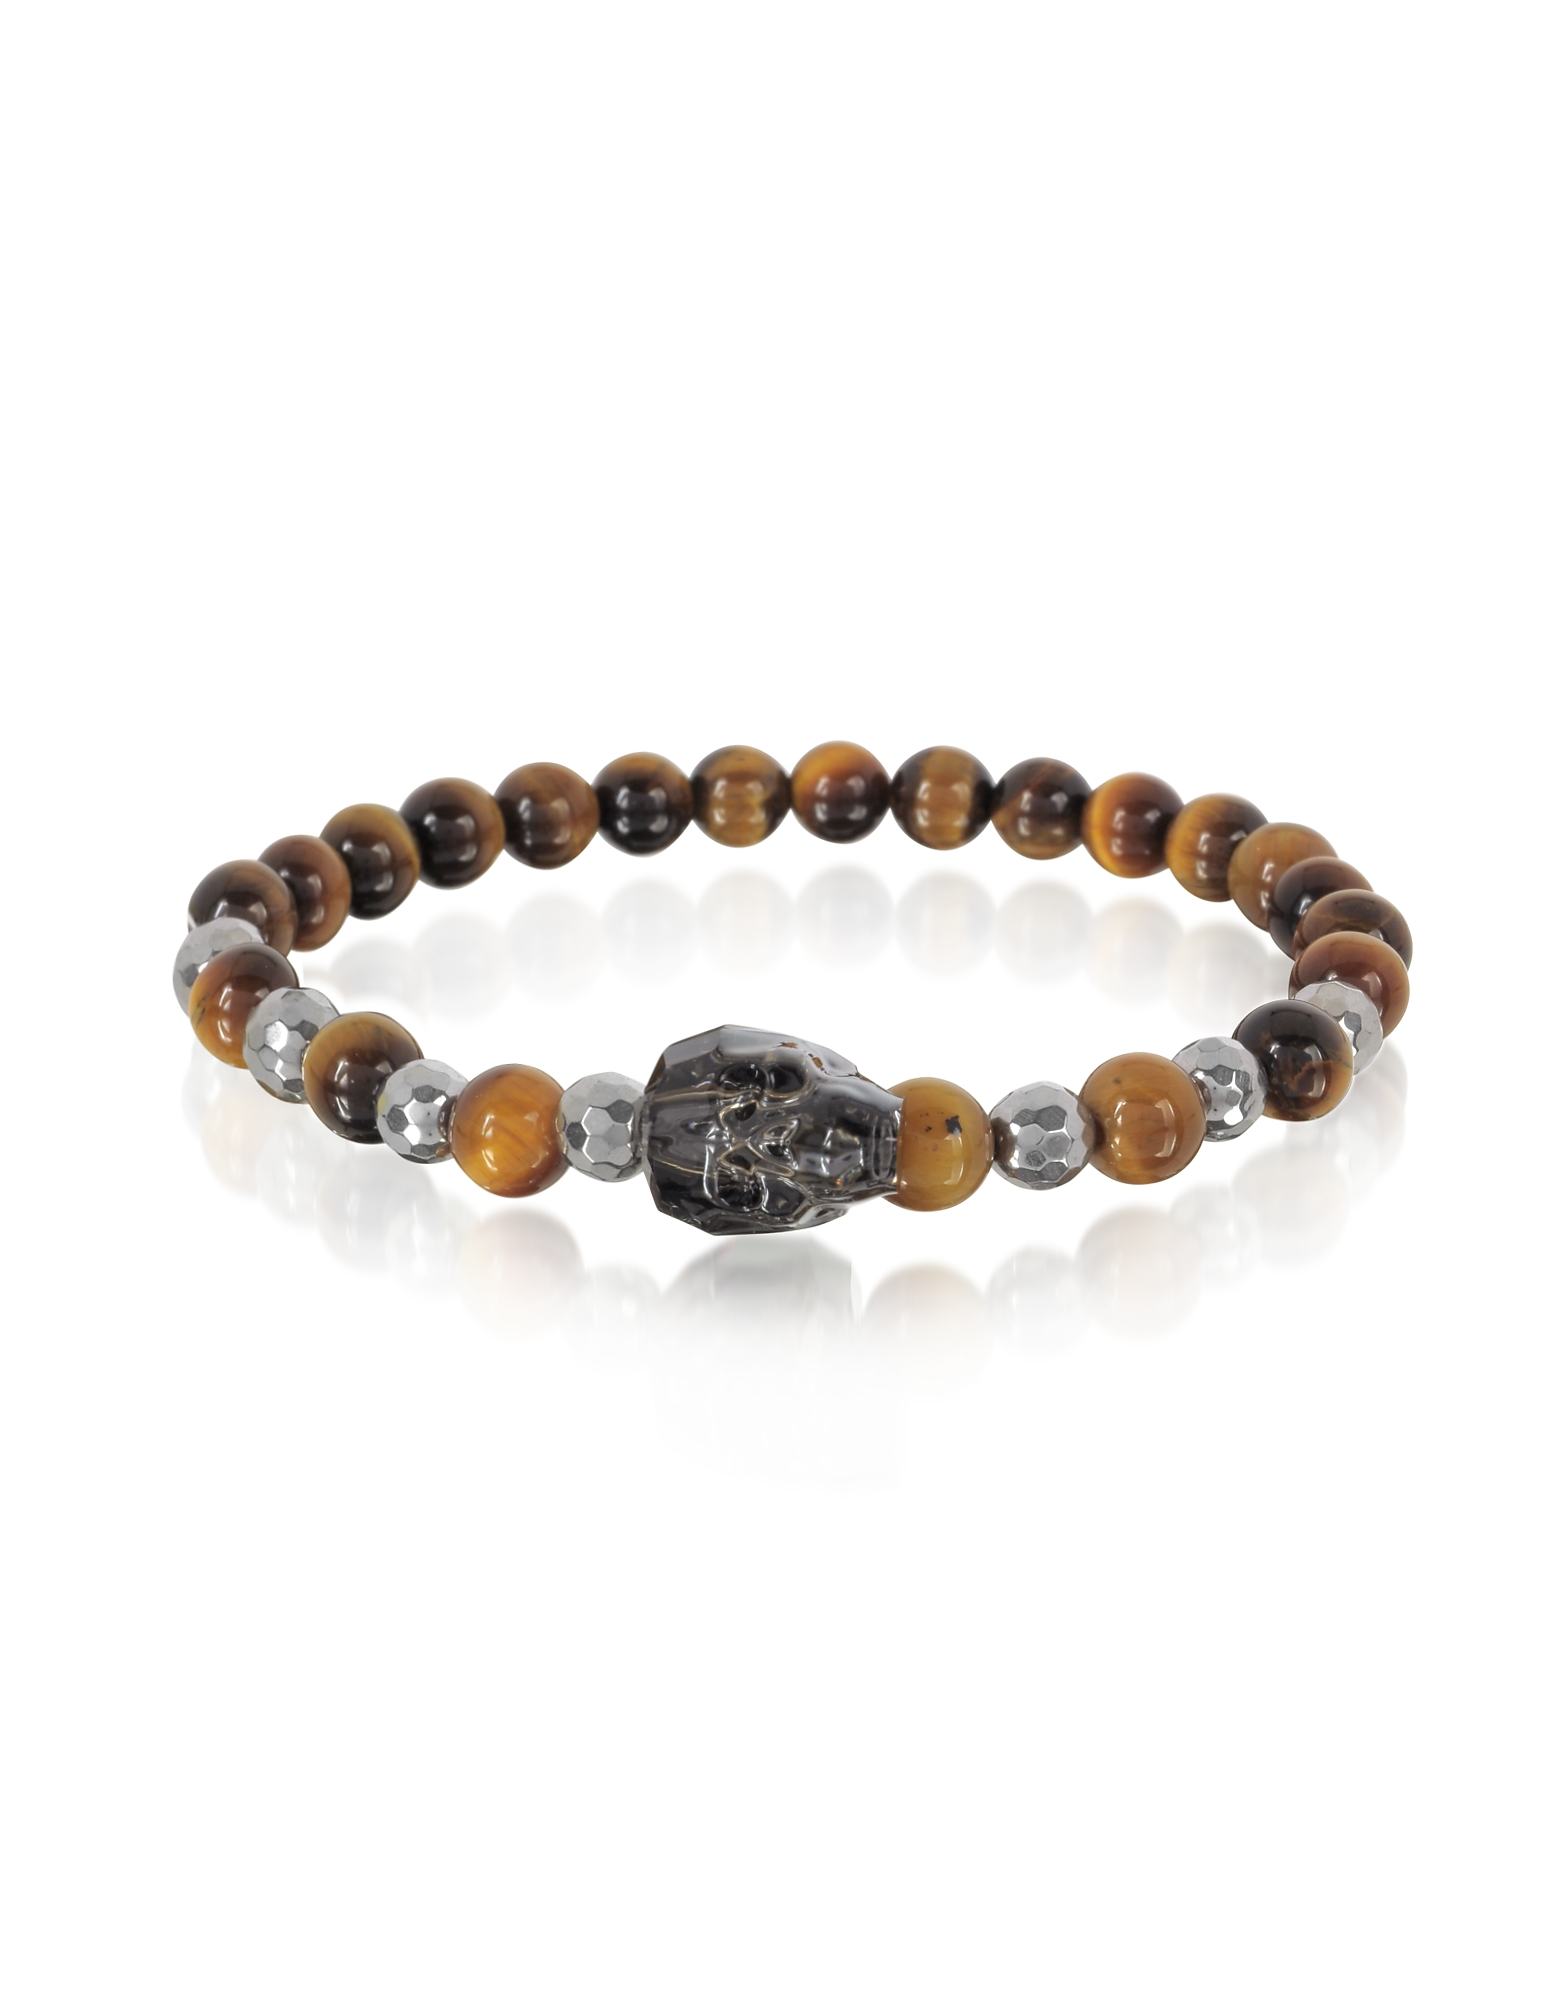 Image of Blackbourne Designer Men's Bracelets, Brown Tigers Eye Irregular Stone Men's Bracelet w/Gunmetal Swarovski Crystal Skull